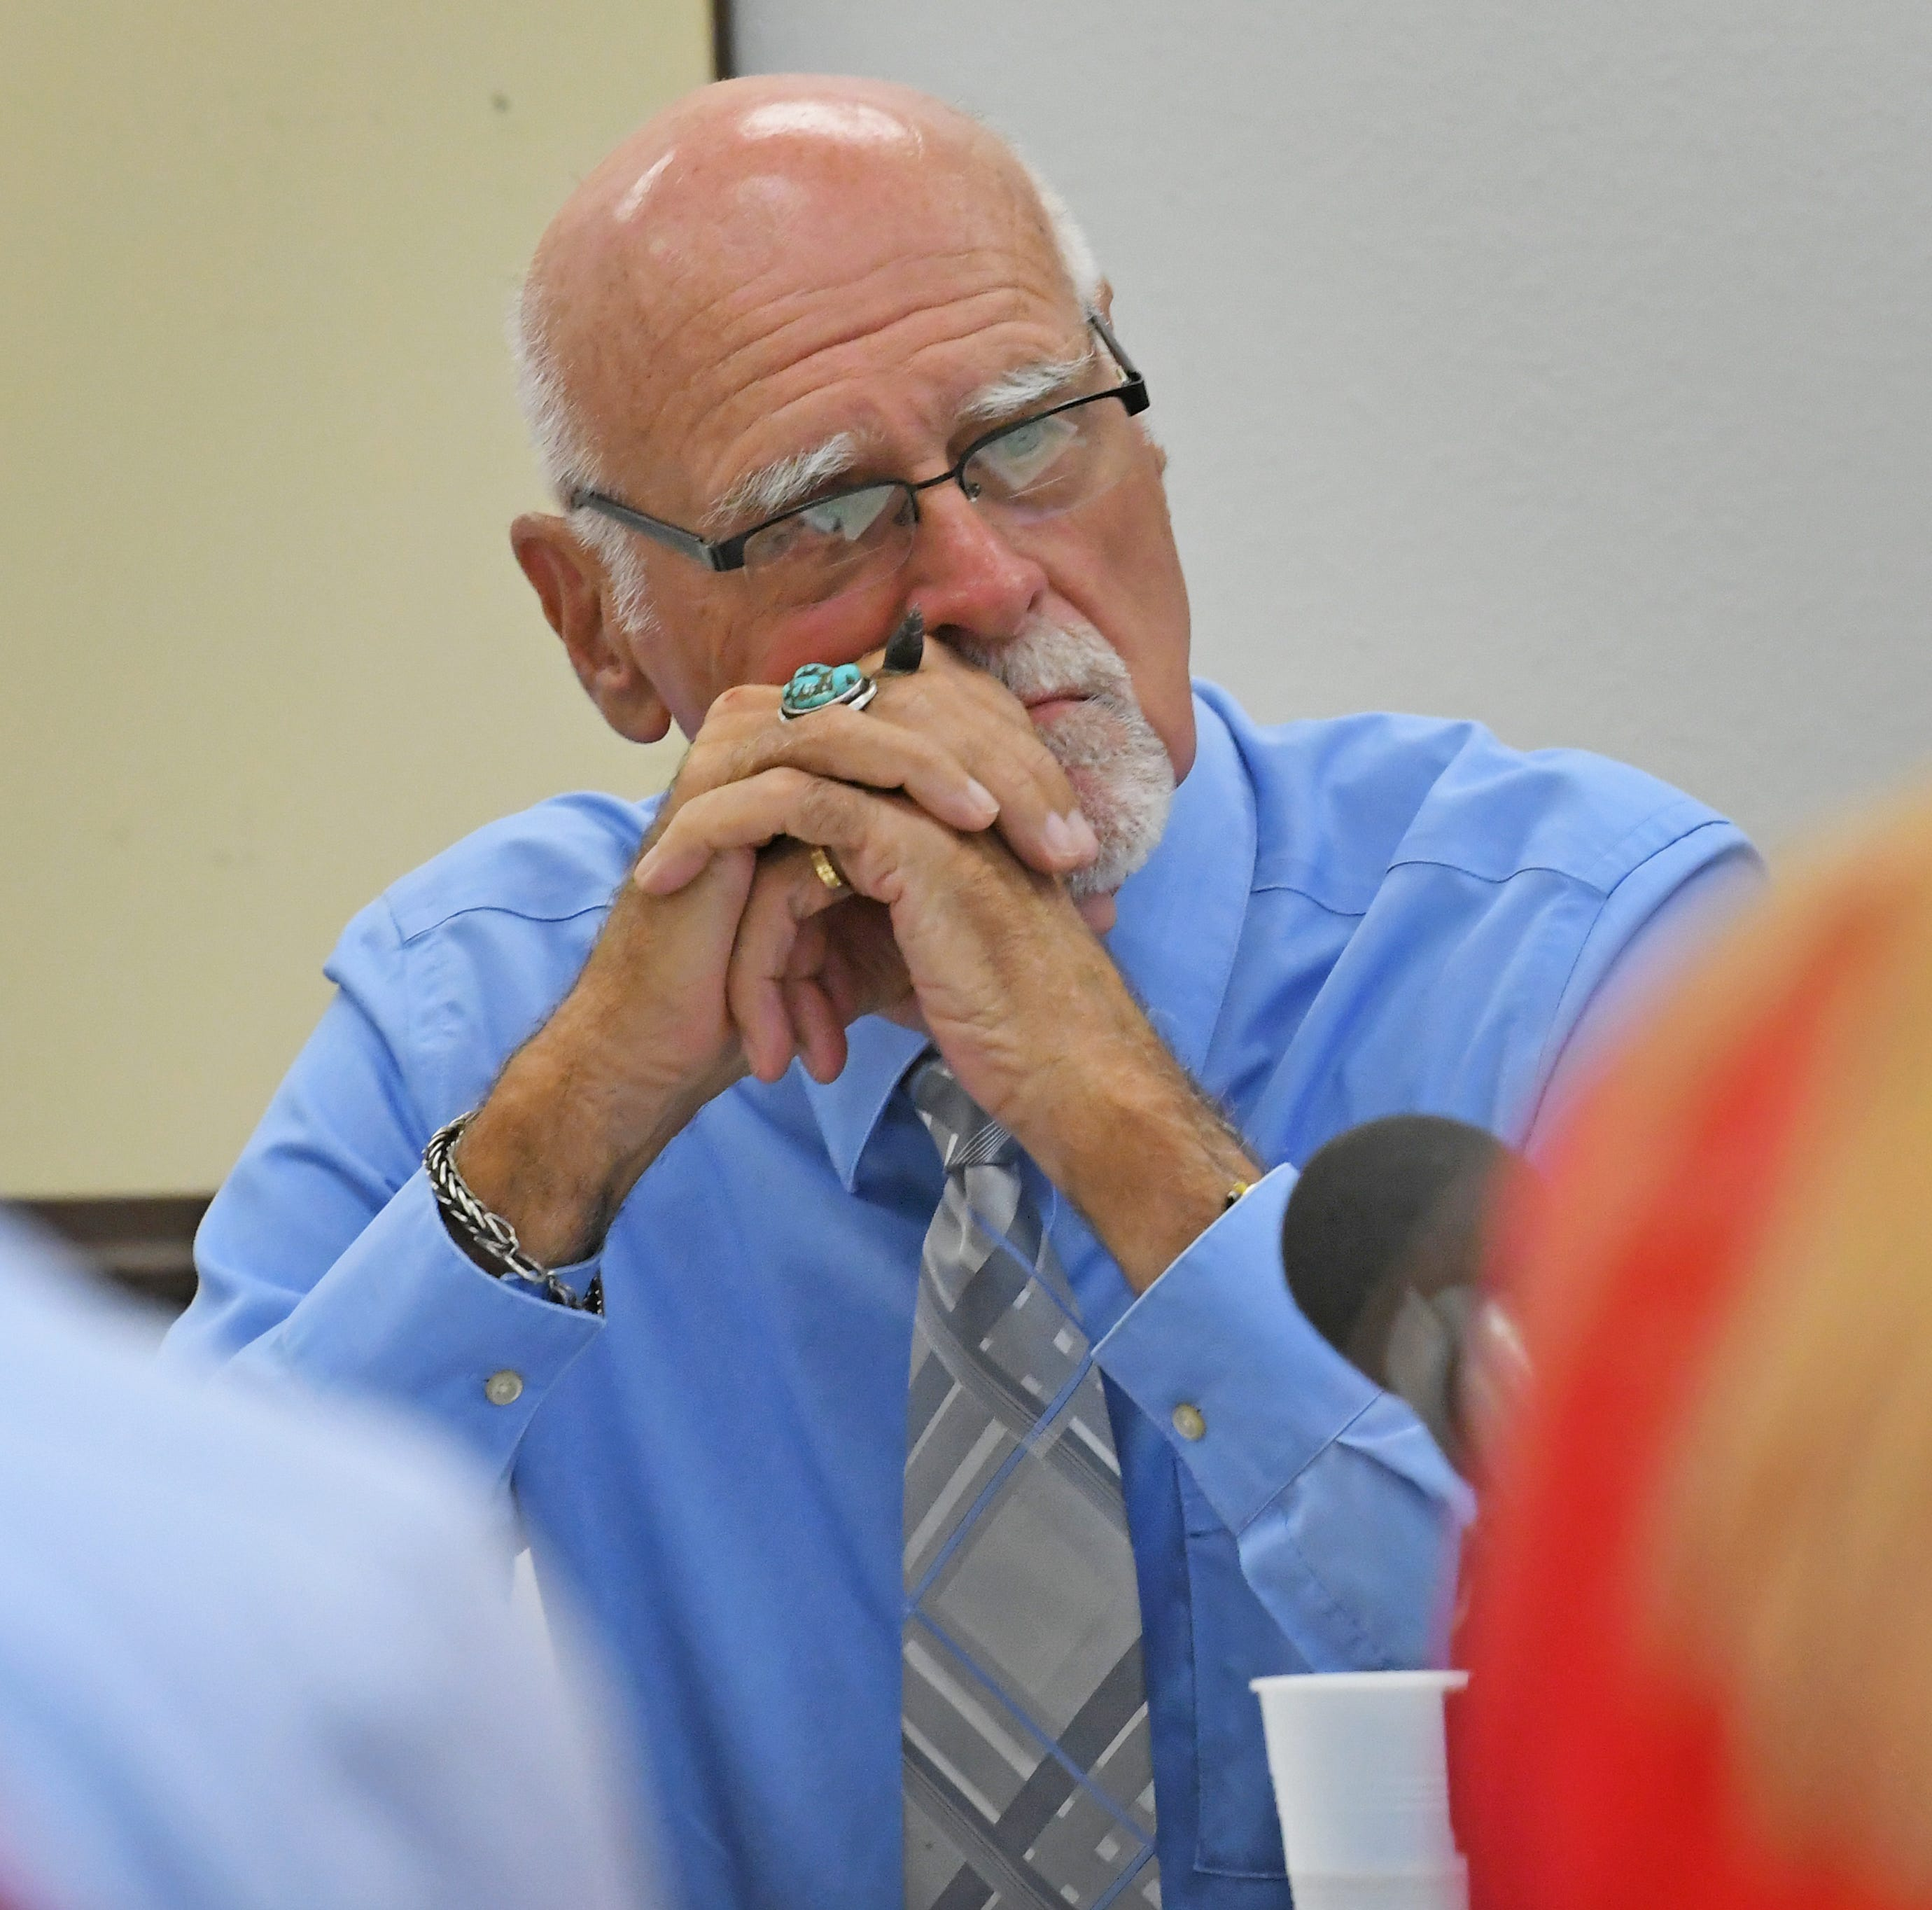 Magistrate backs union request to use reserves to give Brevard teachers raises